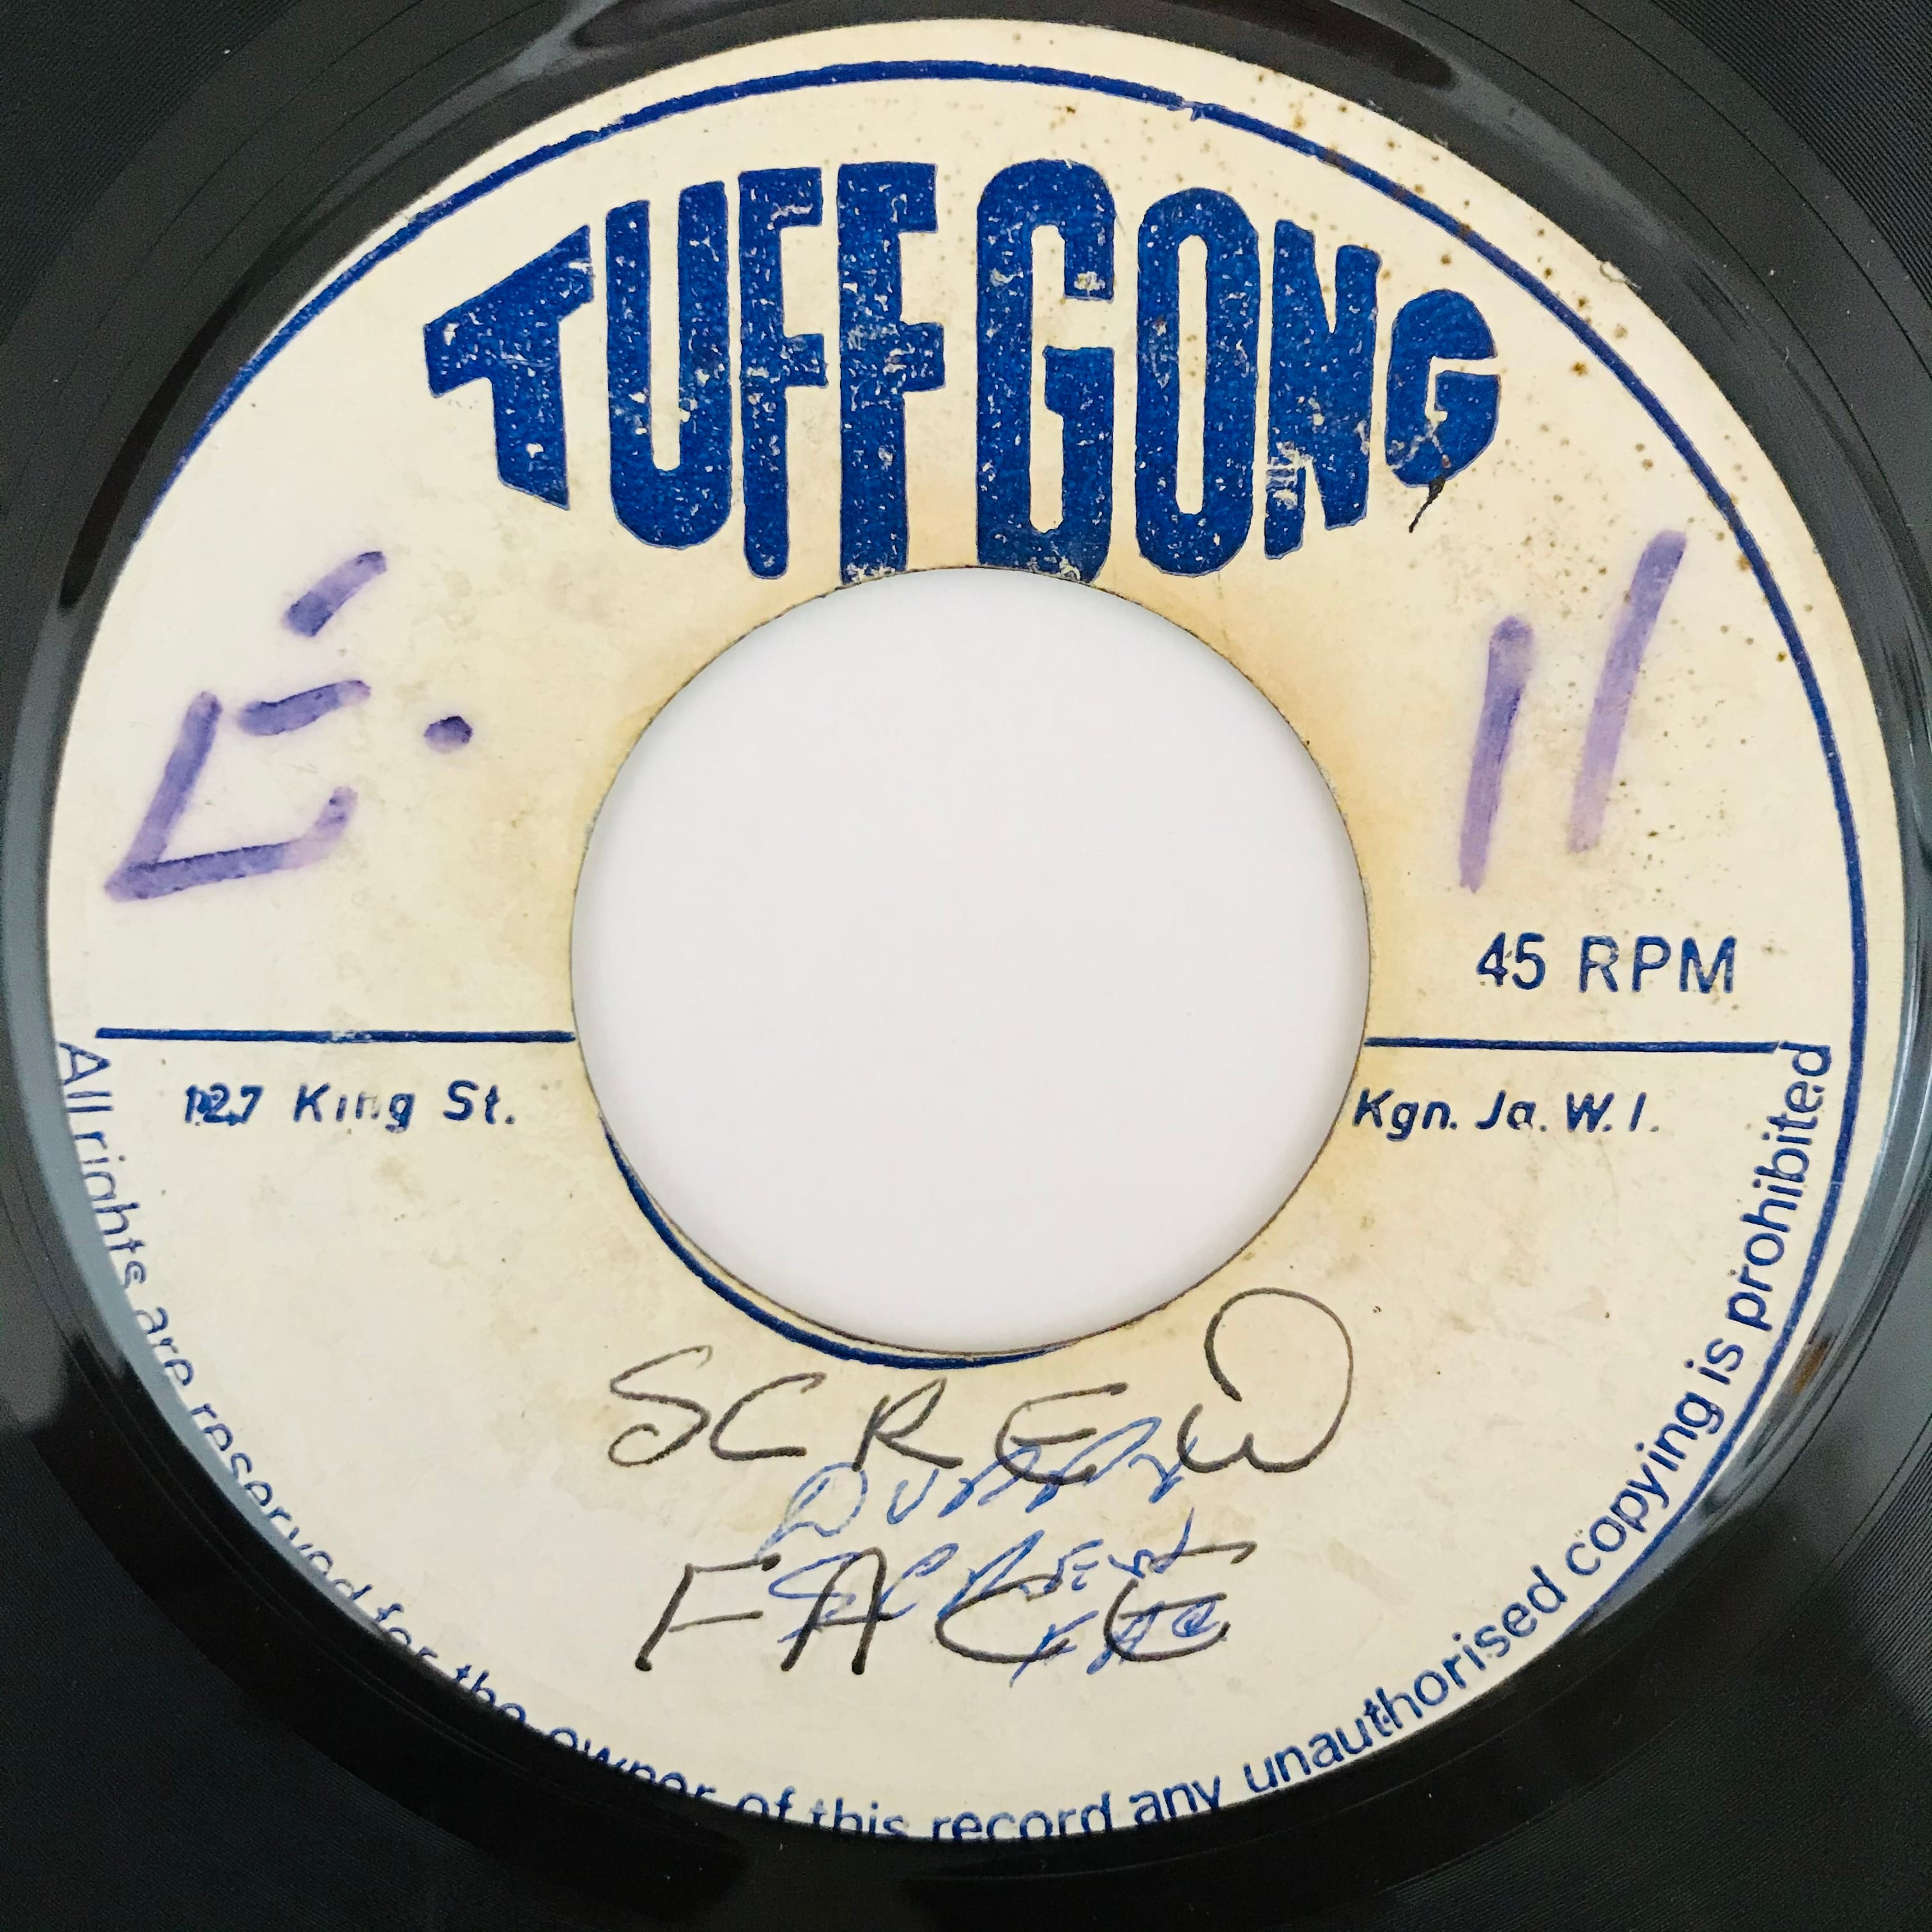 Bob Marley And The Wailers - Screw Face【7-11003】